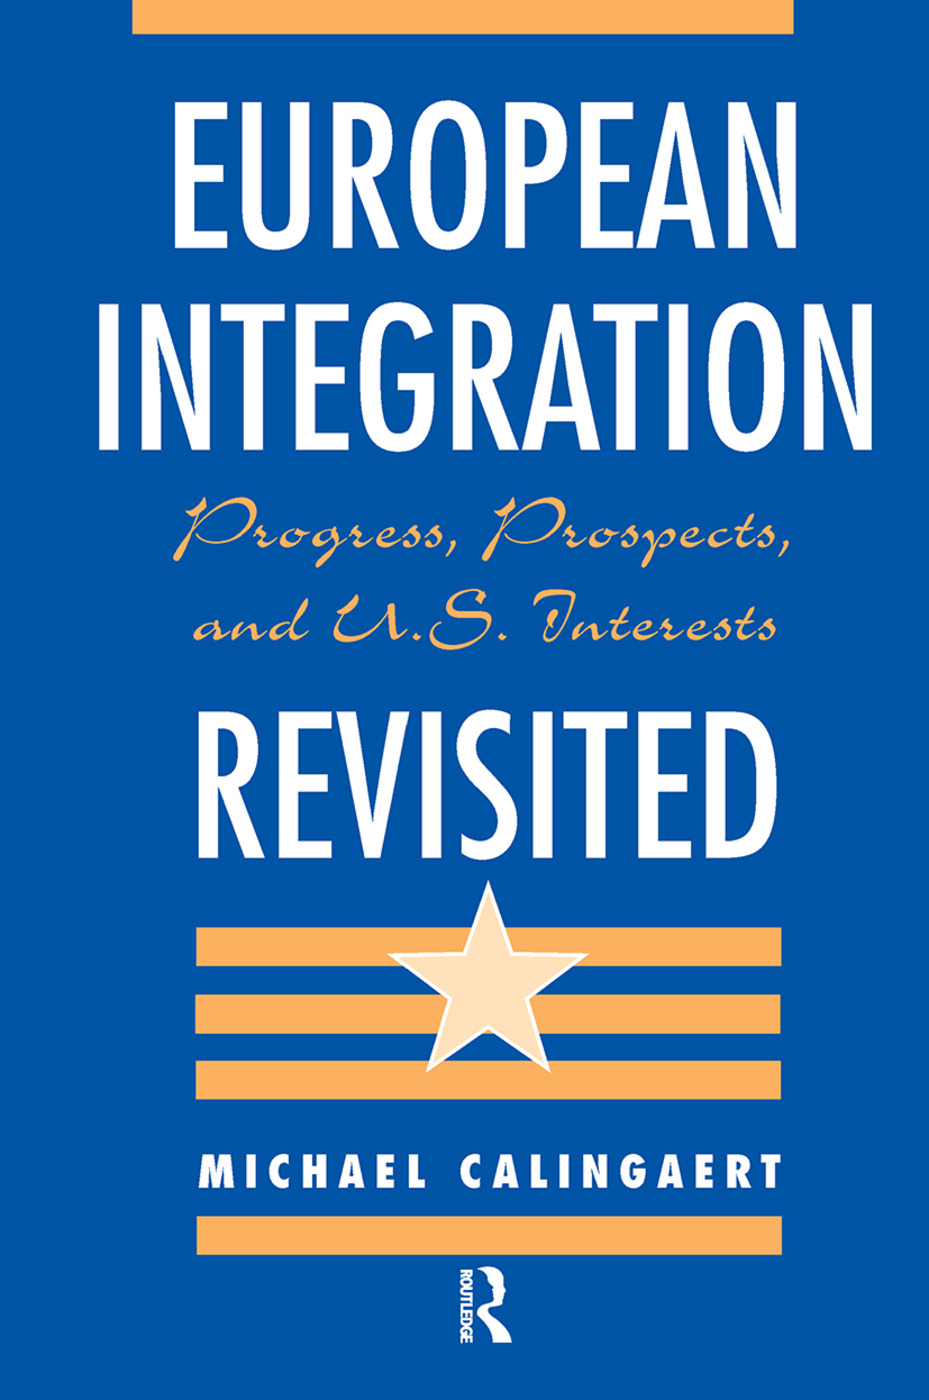 European Integration Revisited: Progress, Prospects, And U.s. Interests, 1st Edition (Hardback) book cover